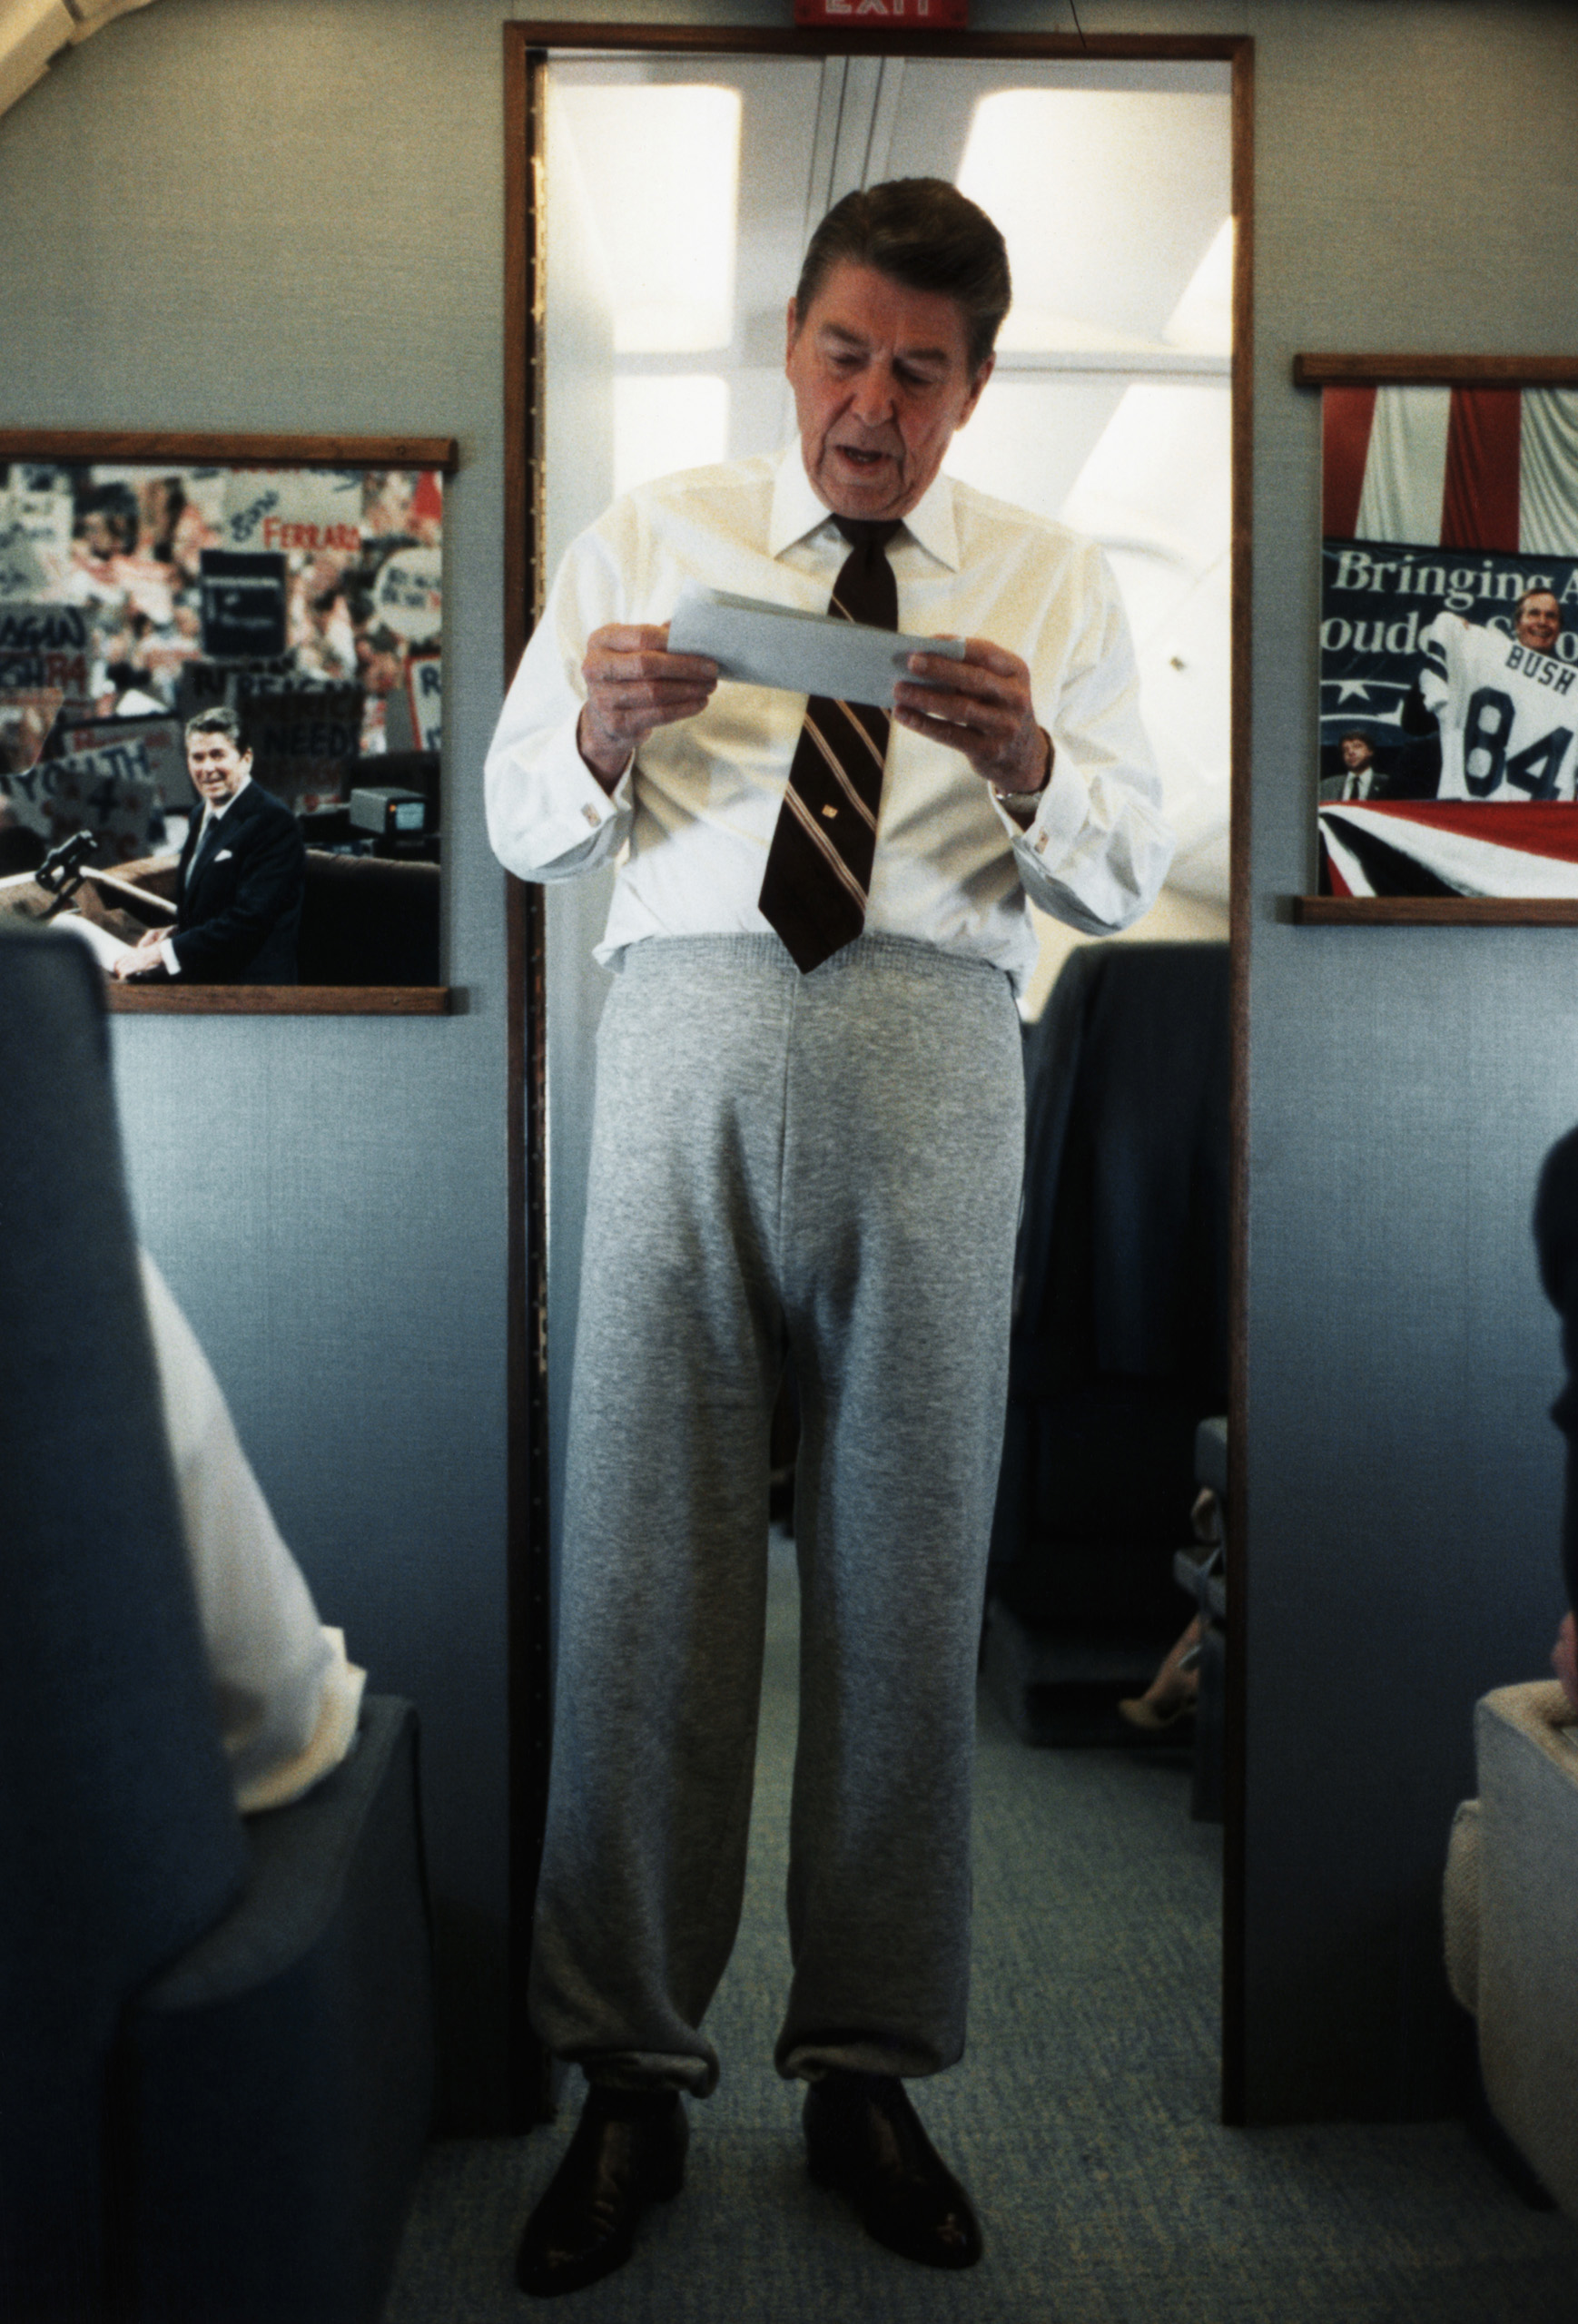 Ronald Reagan in Sweatpants and Tie